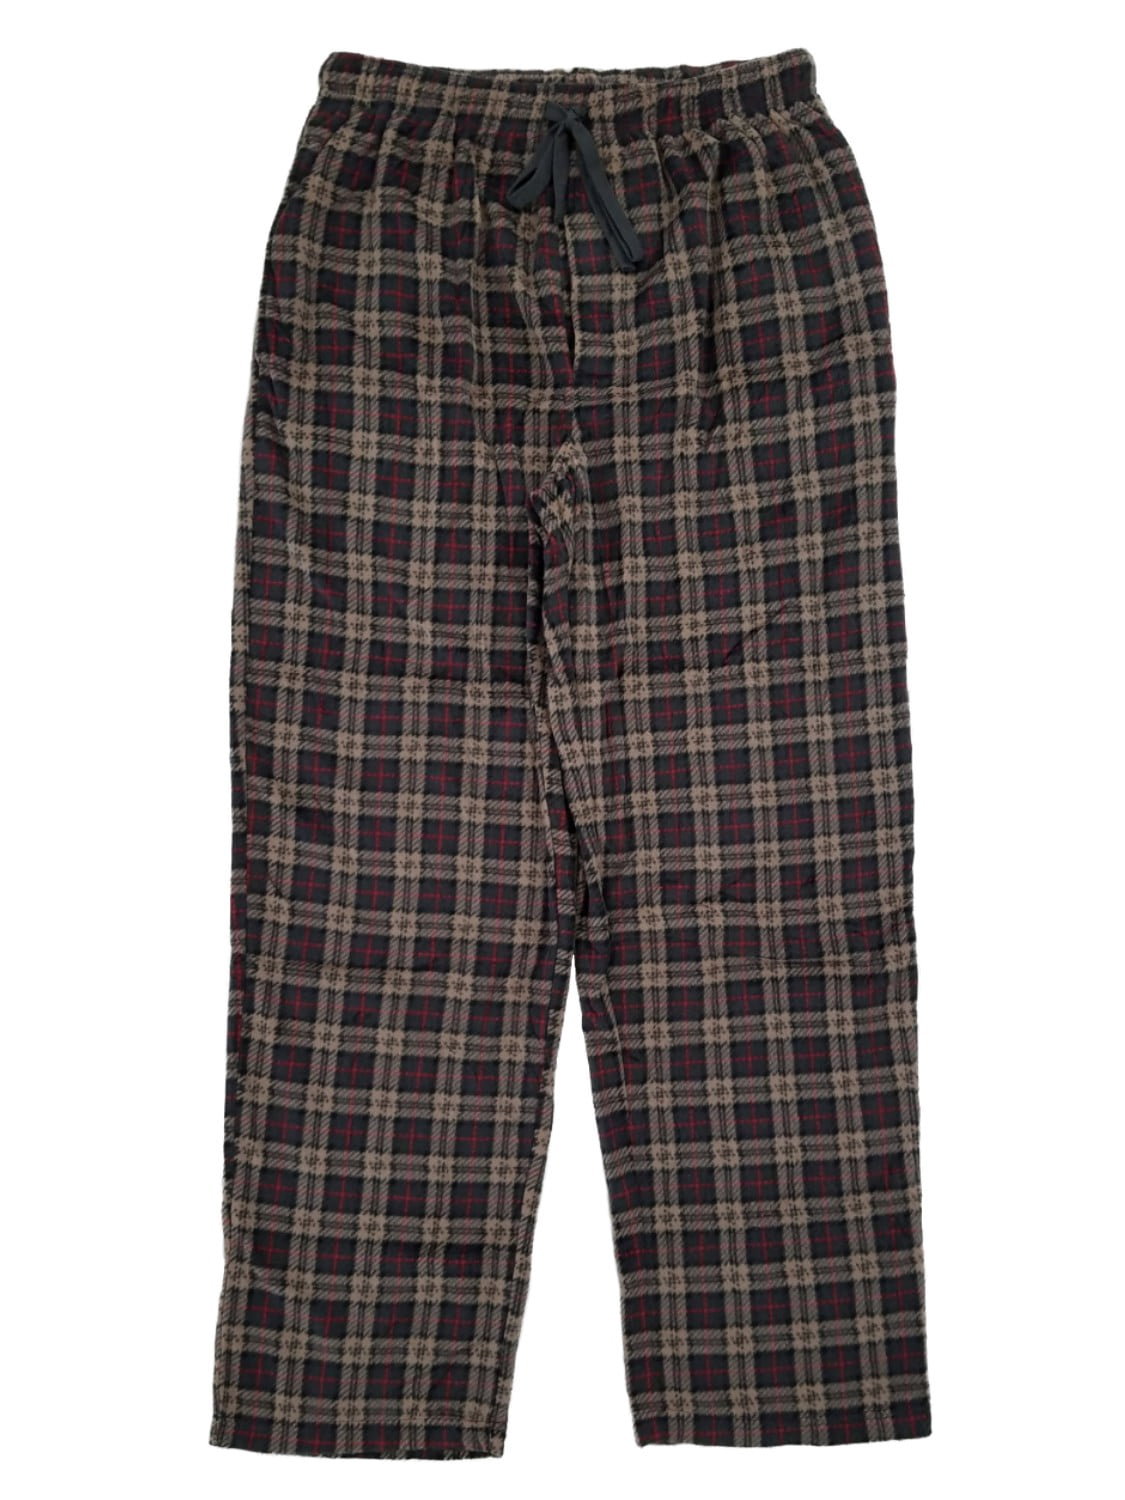 Stafford Mens Sleep Lounge Pajama Pants Grey Outdoors Camping Fishing Tent L-4XL